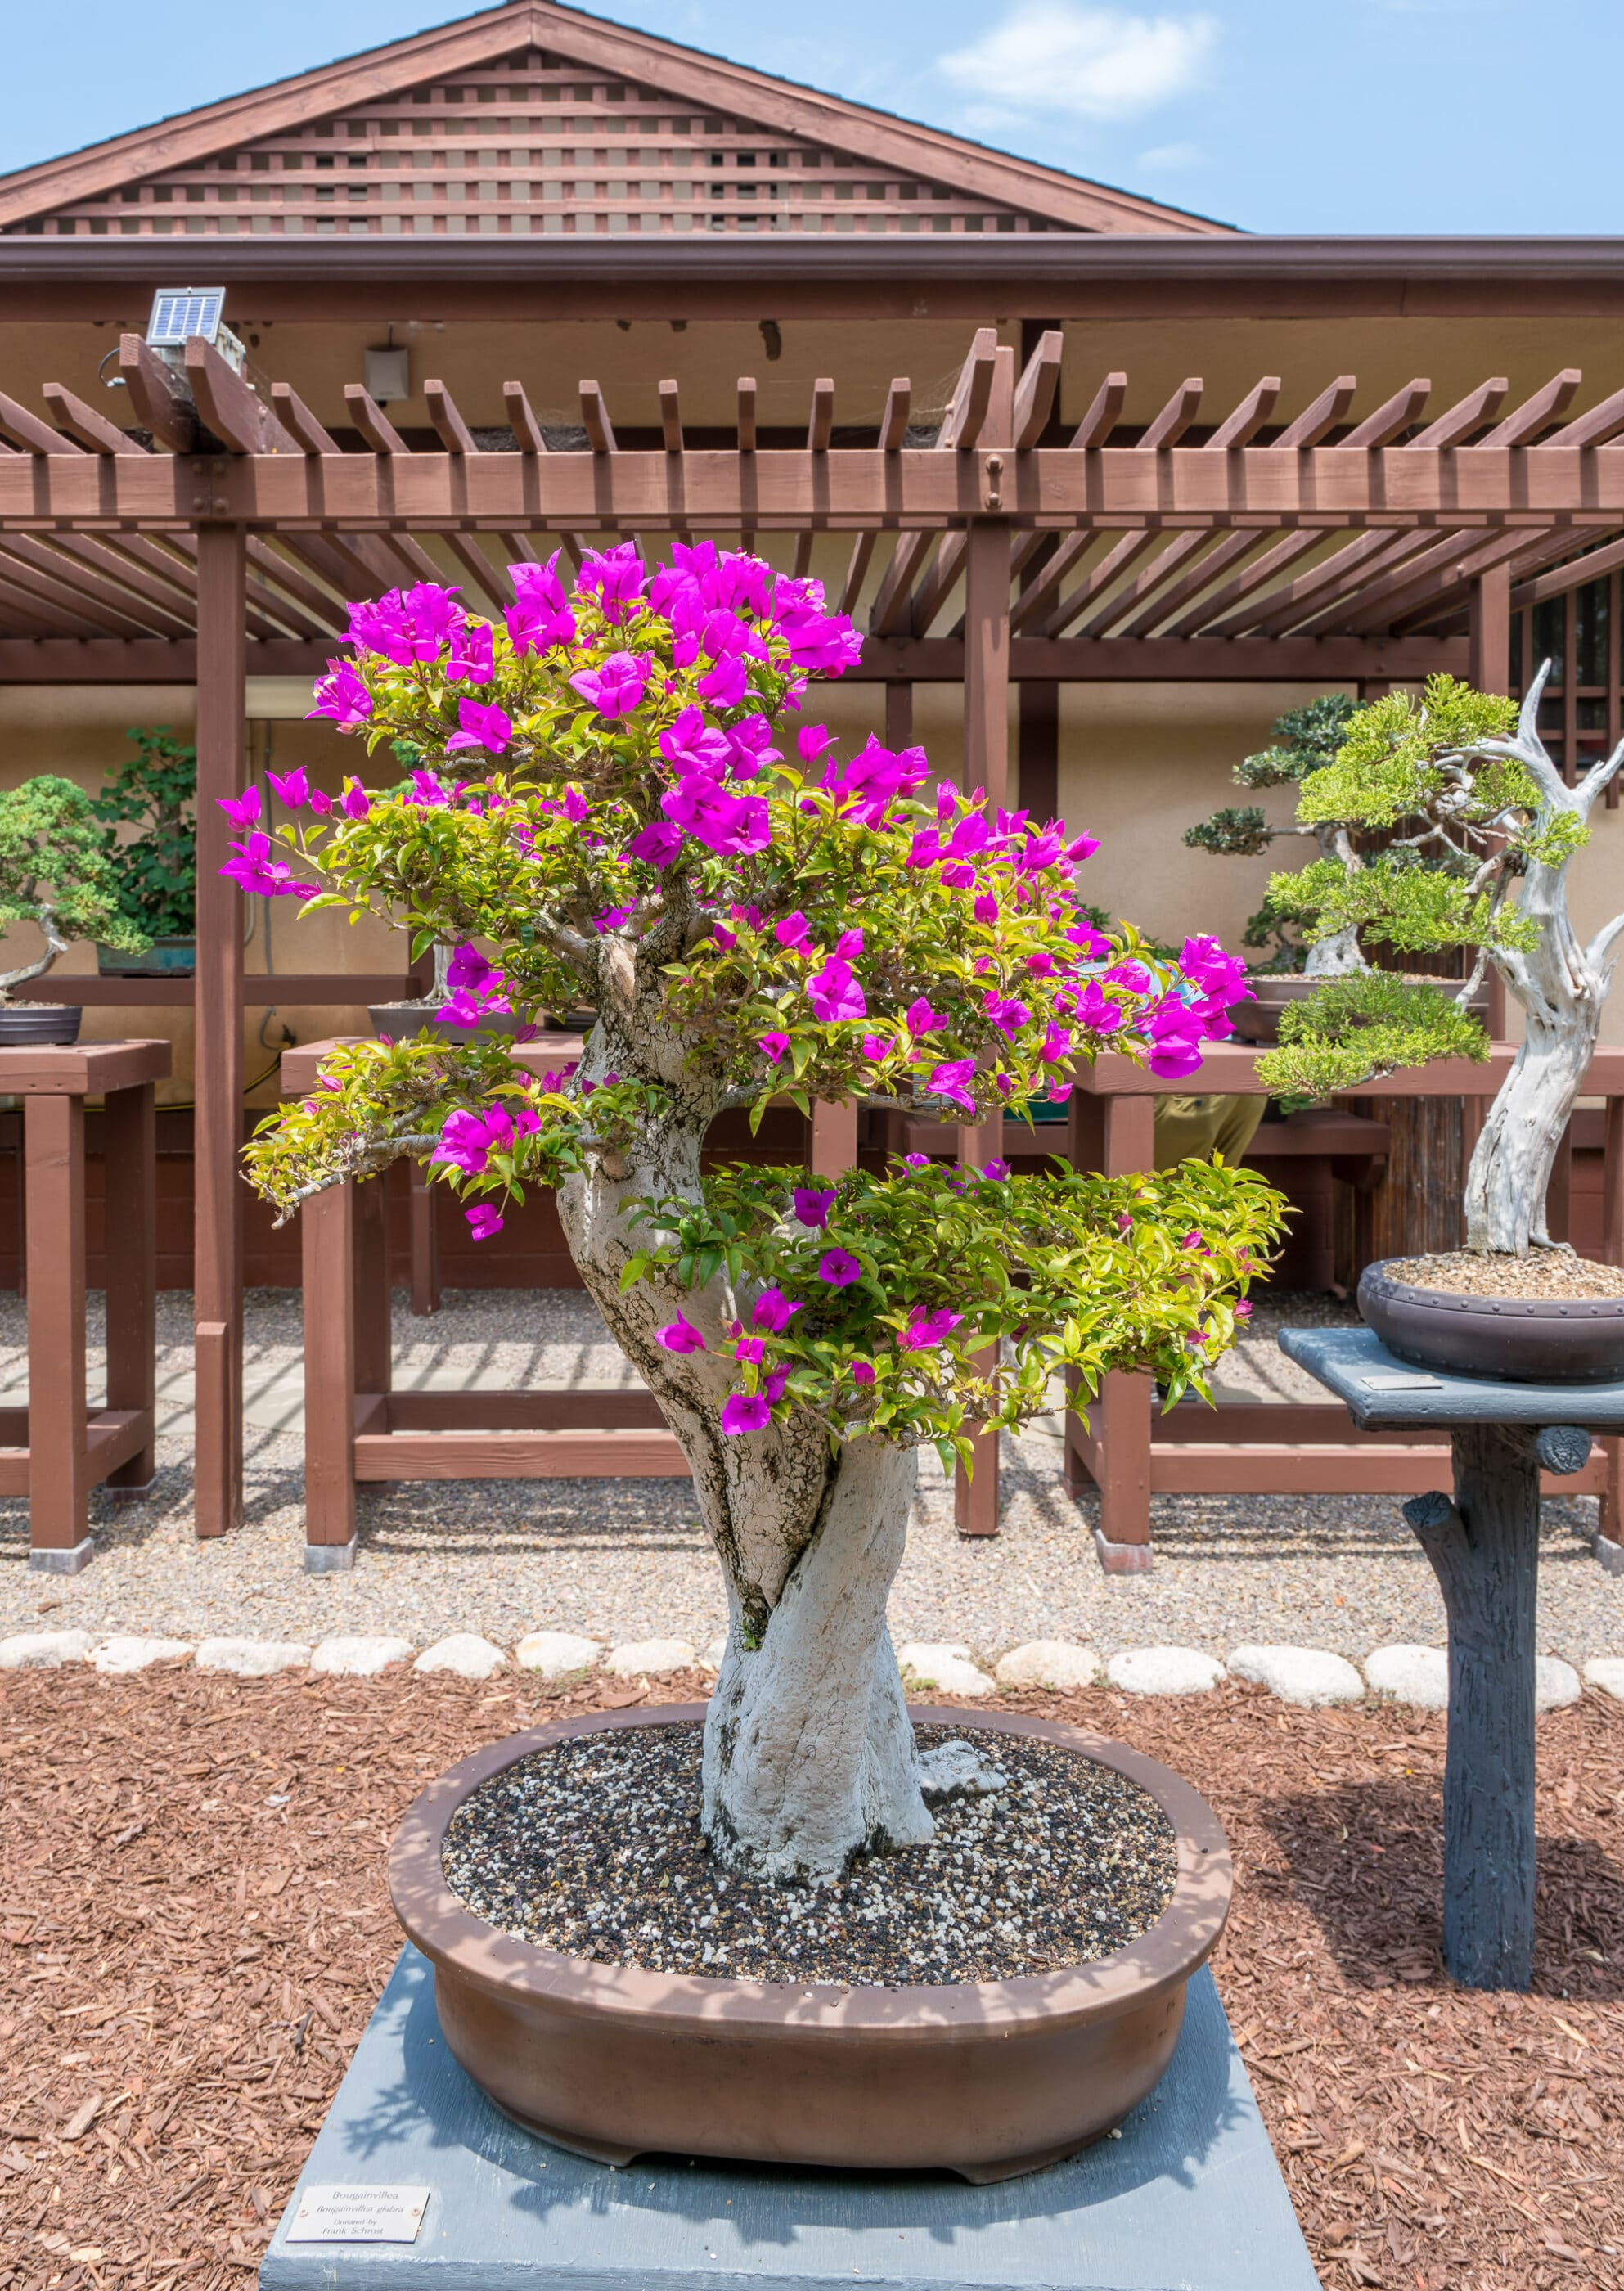 A bonsai with pink flowers on display.